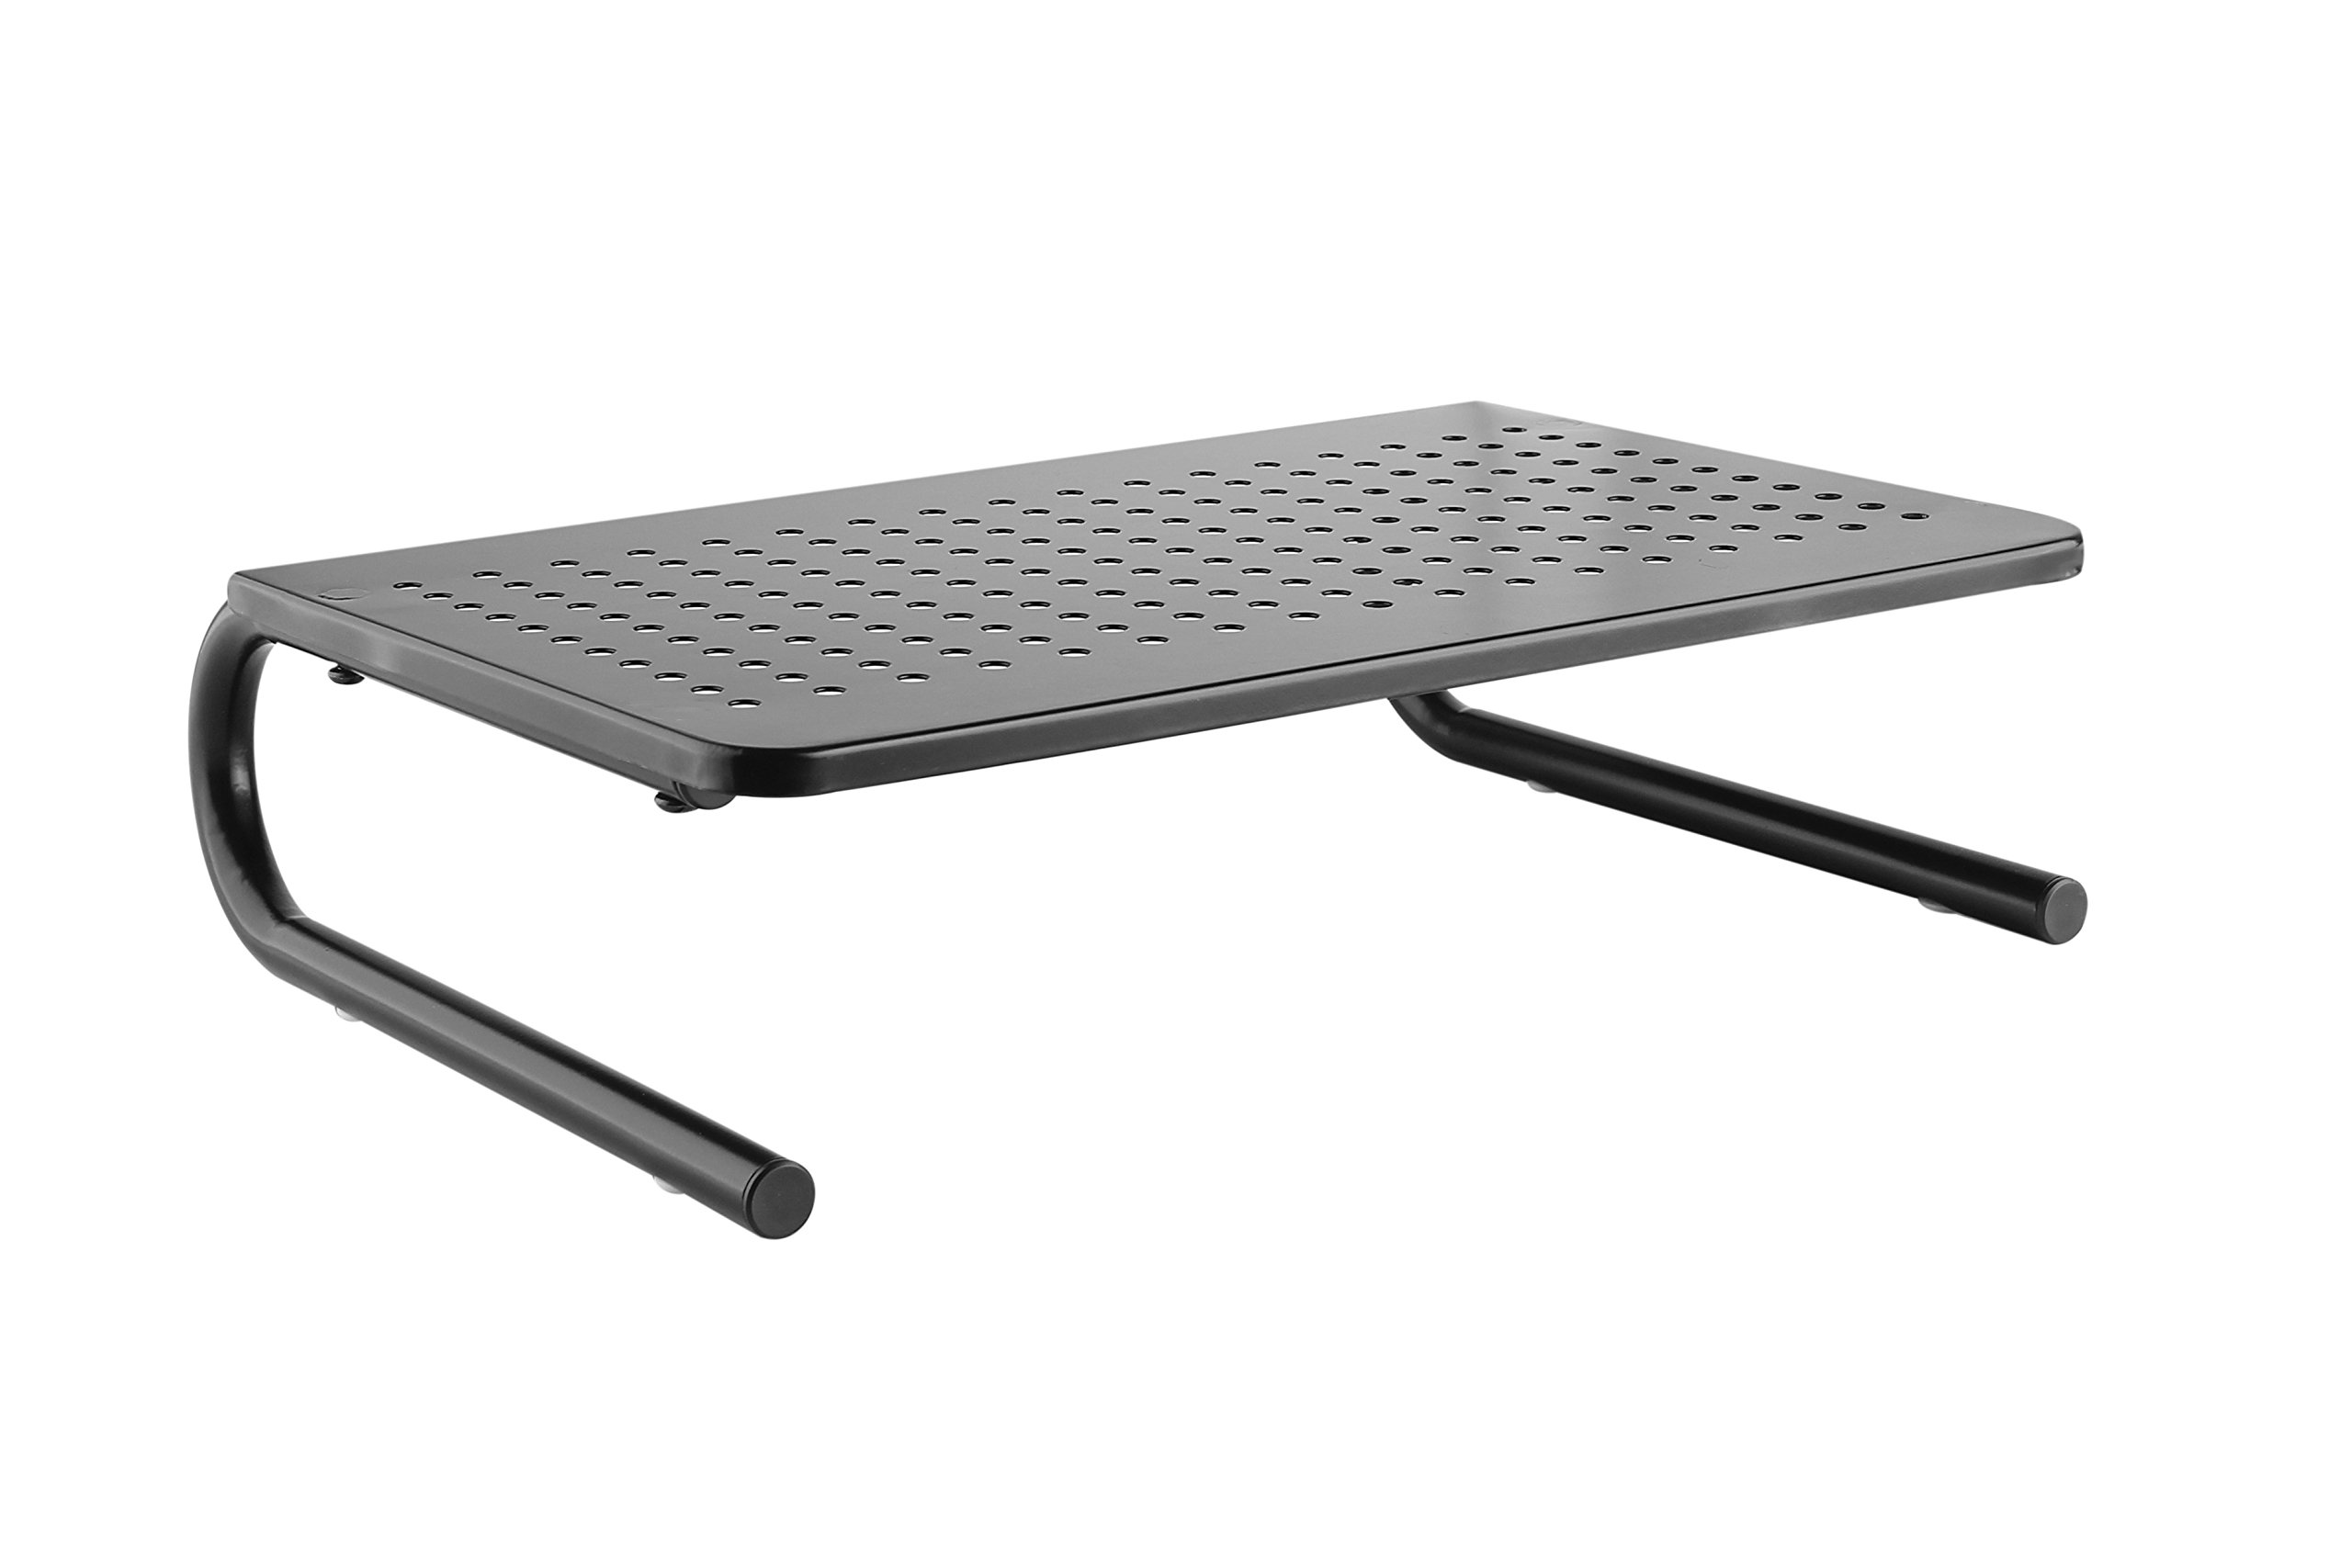 CASIII Monitor Stand Riser Vented for Computer, Laptop, Desk, iMac, Printer Platform inch Height (14.6'' X 10.8'') CAS-082 by Casiii (Image #5)